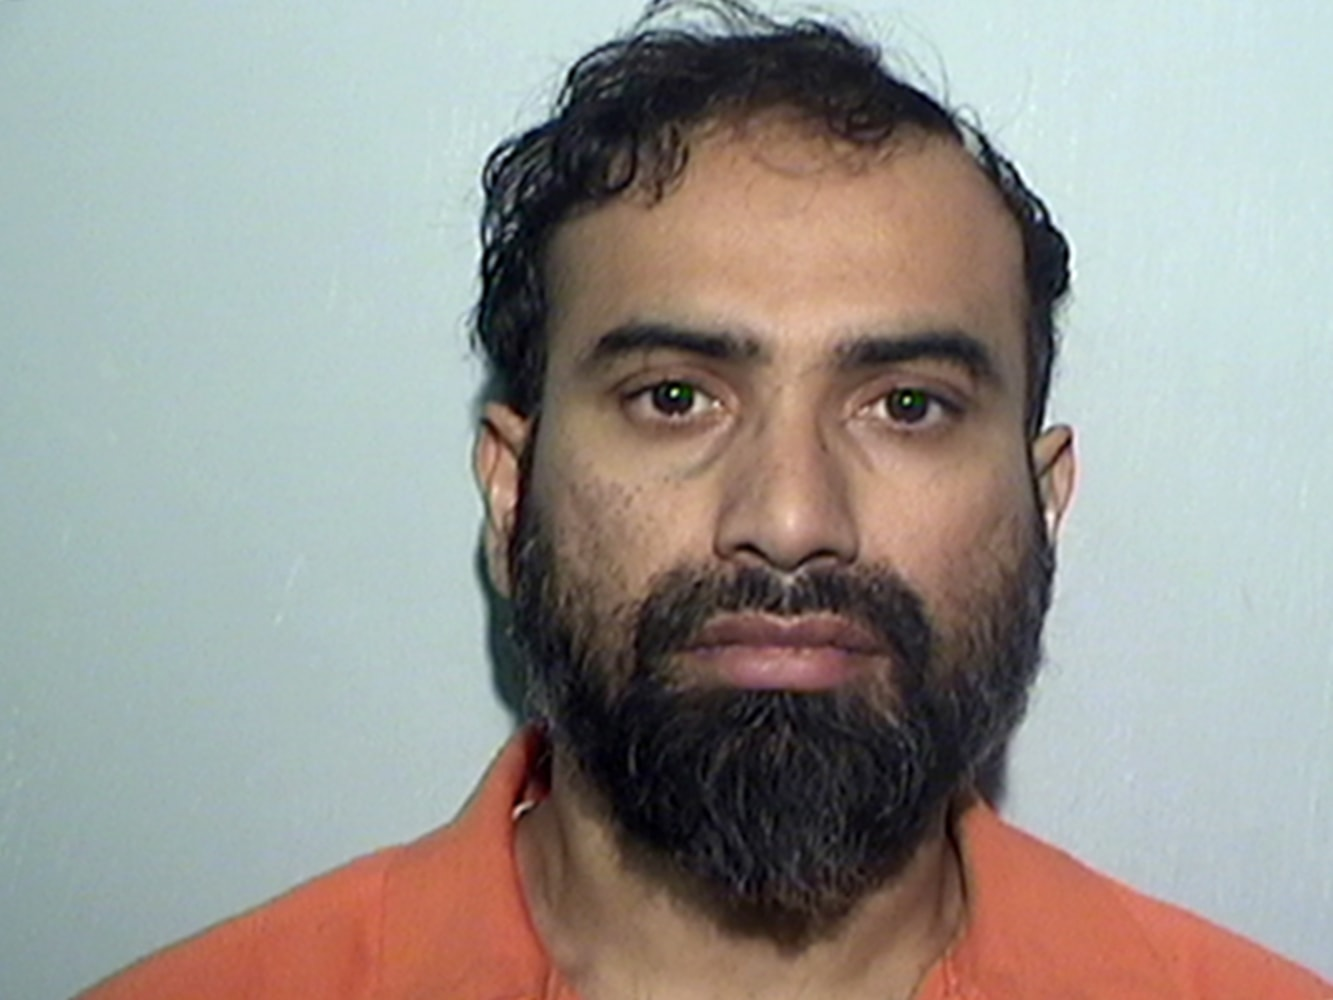 Ohio Man Conspired To Support Terrorists And Paid To Have Judge Murdered